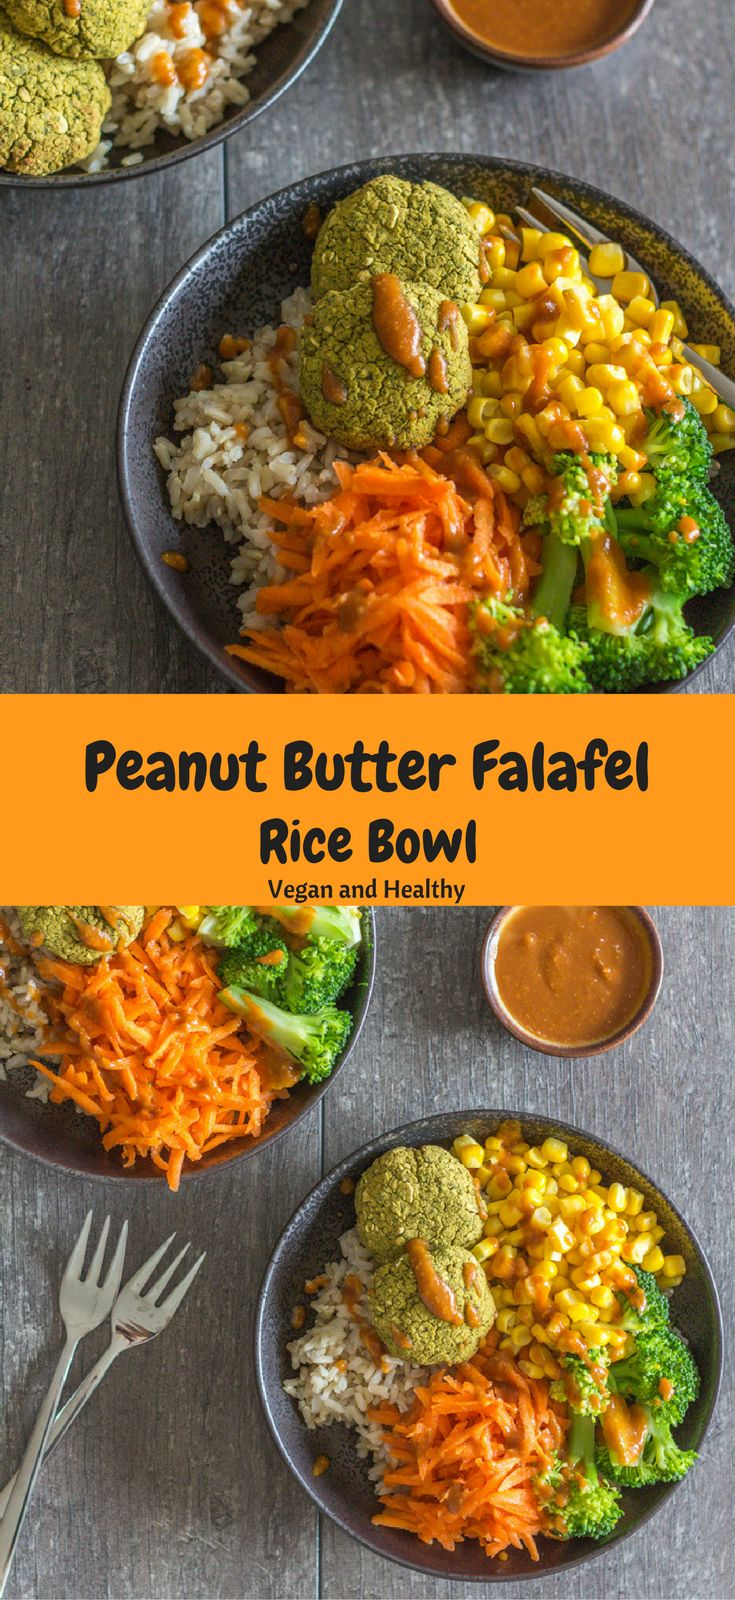 An amazing Peanut Butter Falafel Rice Bowl with loads of greens, tasty falafels, and an addicting peanut butter dressing. A healthy, satisfying, and delicious vegan meal. Healthy vegan recipes|veggie burger| healthy| vegan| dinner| lunch| vegan dinner recipes| recipes| vegetarian| The Mostly Healthy